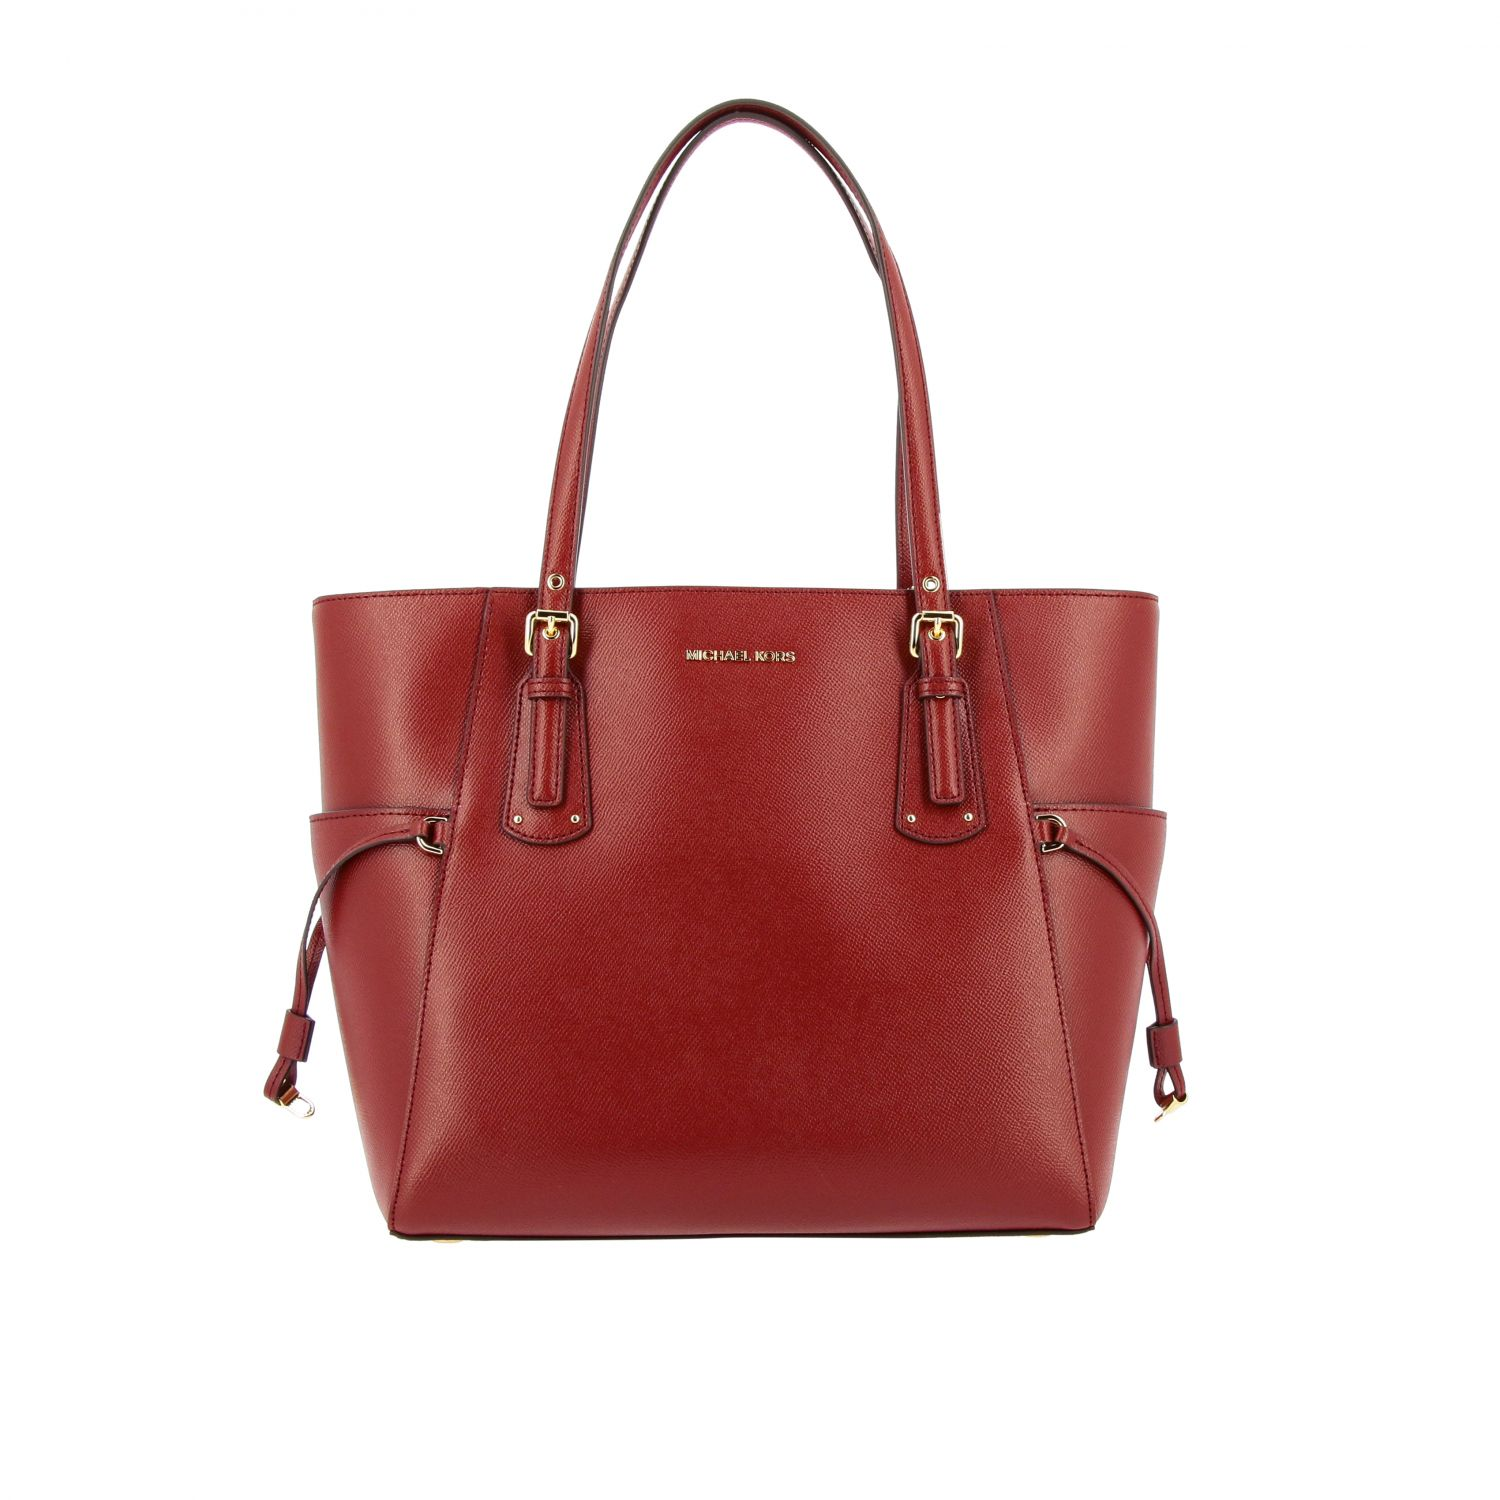 Michael Michael Kors Voyager east west tote 真皮手袋 酒红 1